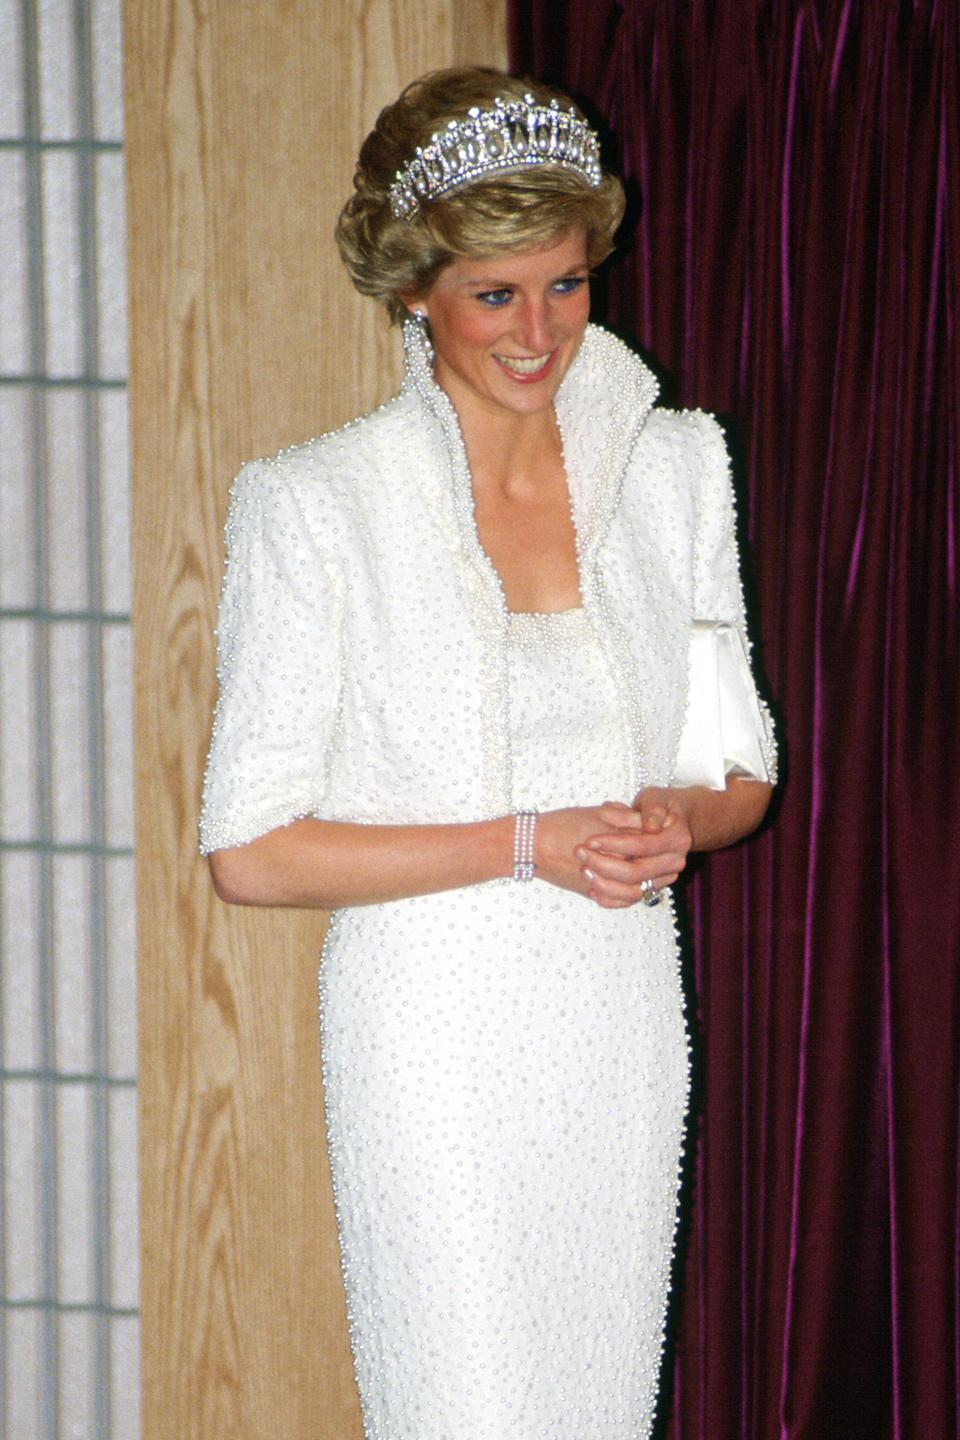 Princess Diana wore the jewellery on a trip to Hong Kong in 1989. (Getty Images)